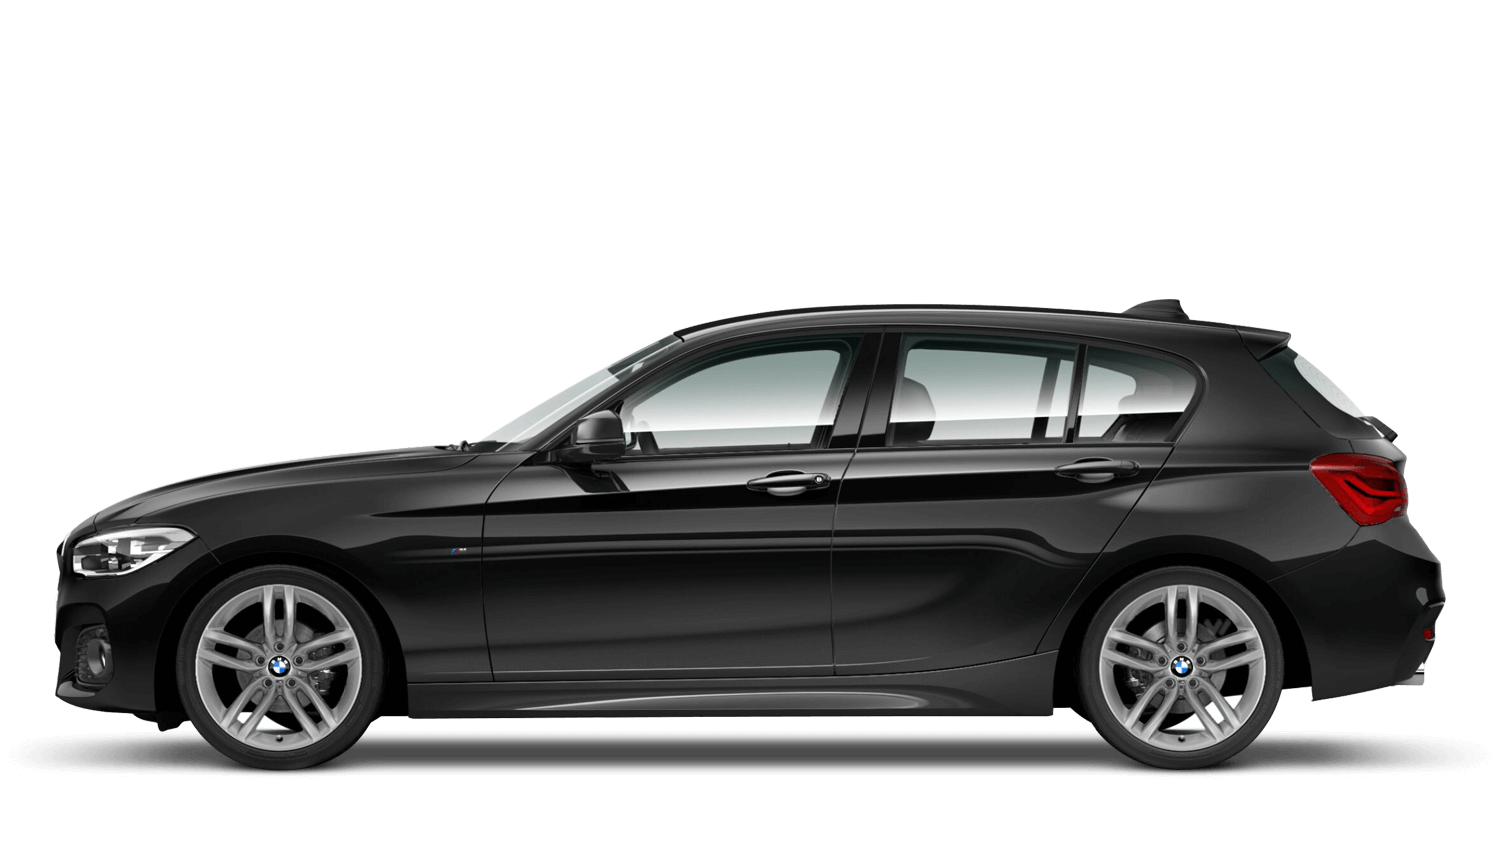 bmw 1 series 5 door m sport finance available barons. Black Bedroom Furniture Sets. Home Design Ideas